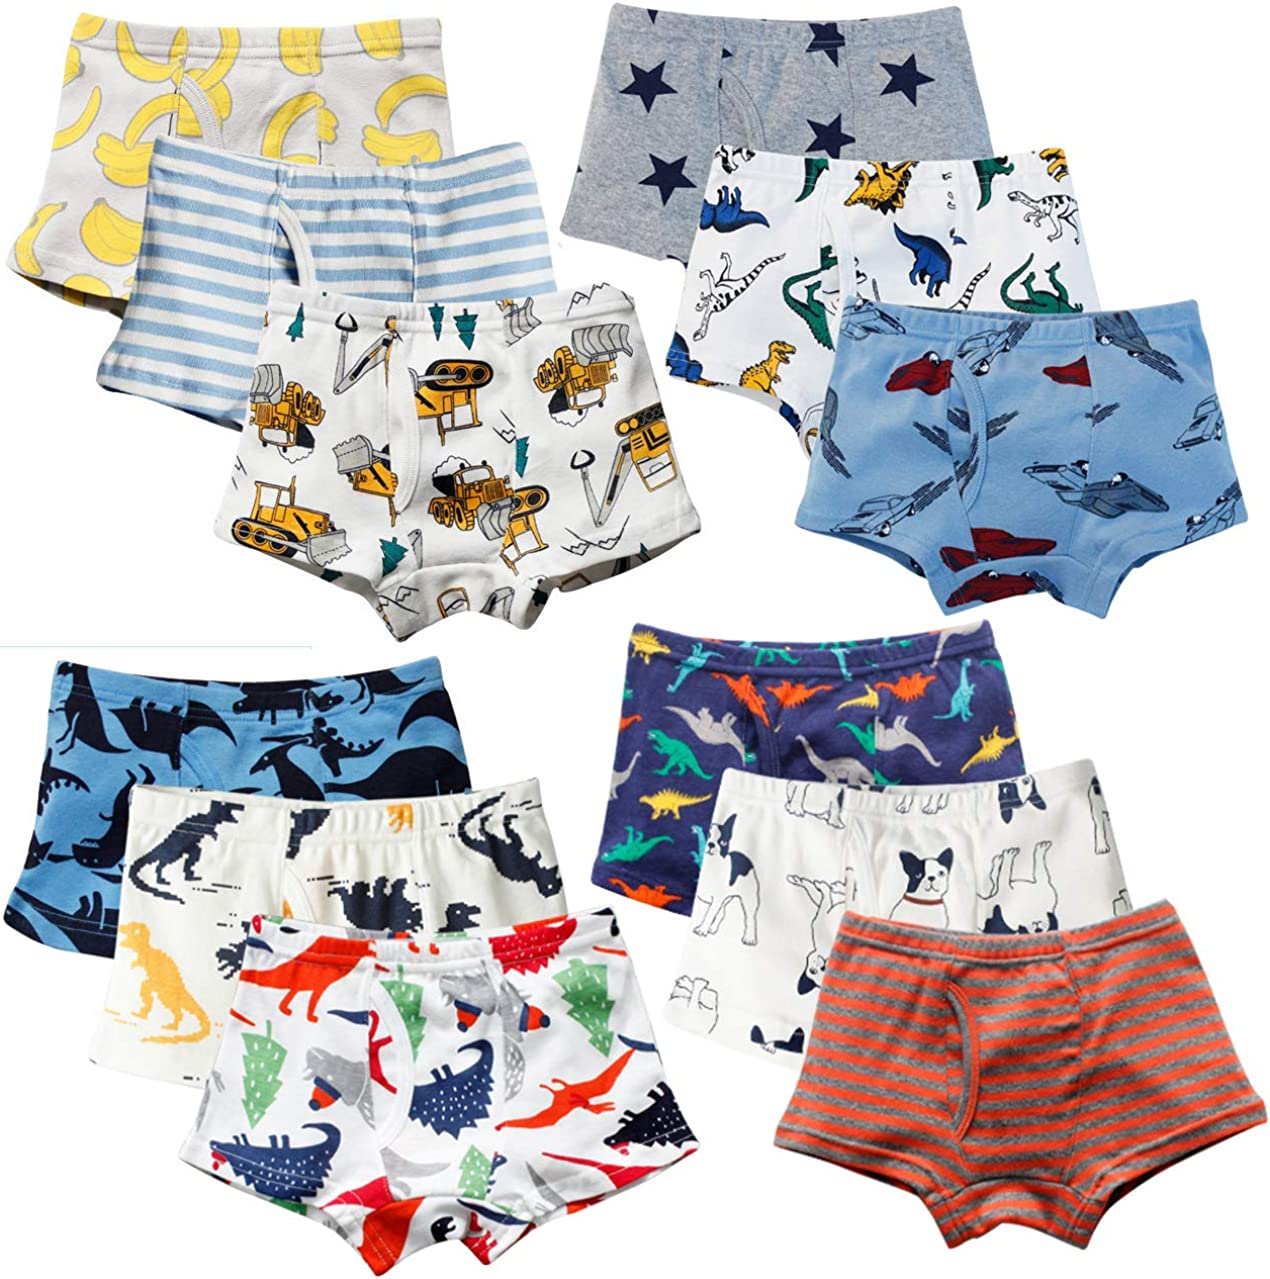 XNN Soft Cotton Baby Toddler Underwear Little Boys Girls Assorted Briefs Pack of 4